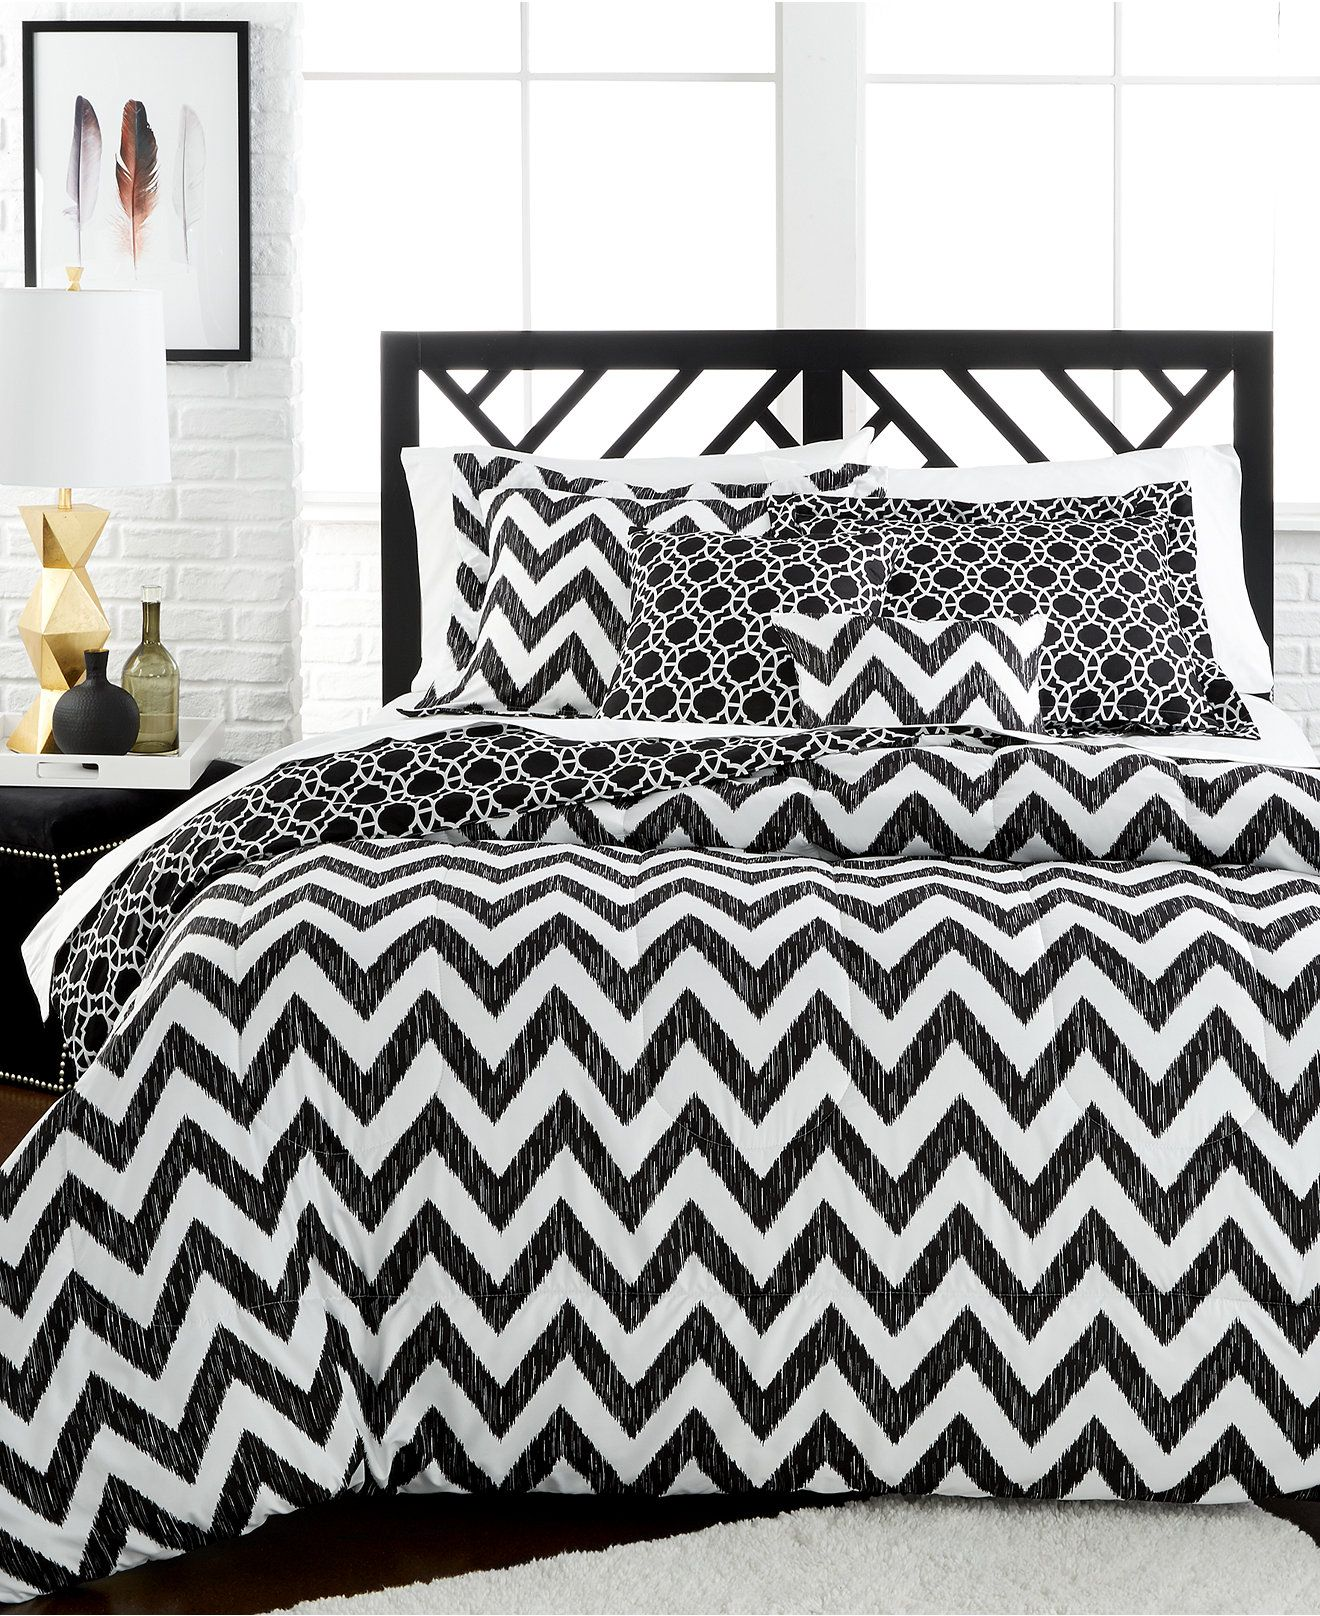 black nursery bedroom sets duchess in photo california xl king chevron piece set white of full conjunction comforter and size twin with